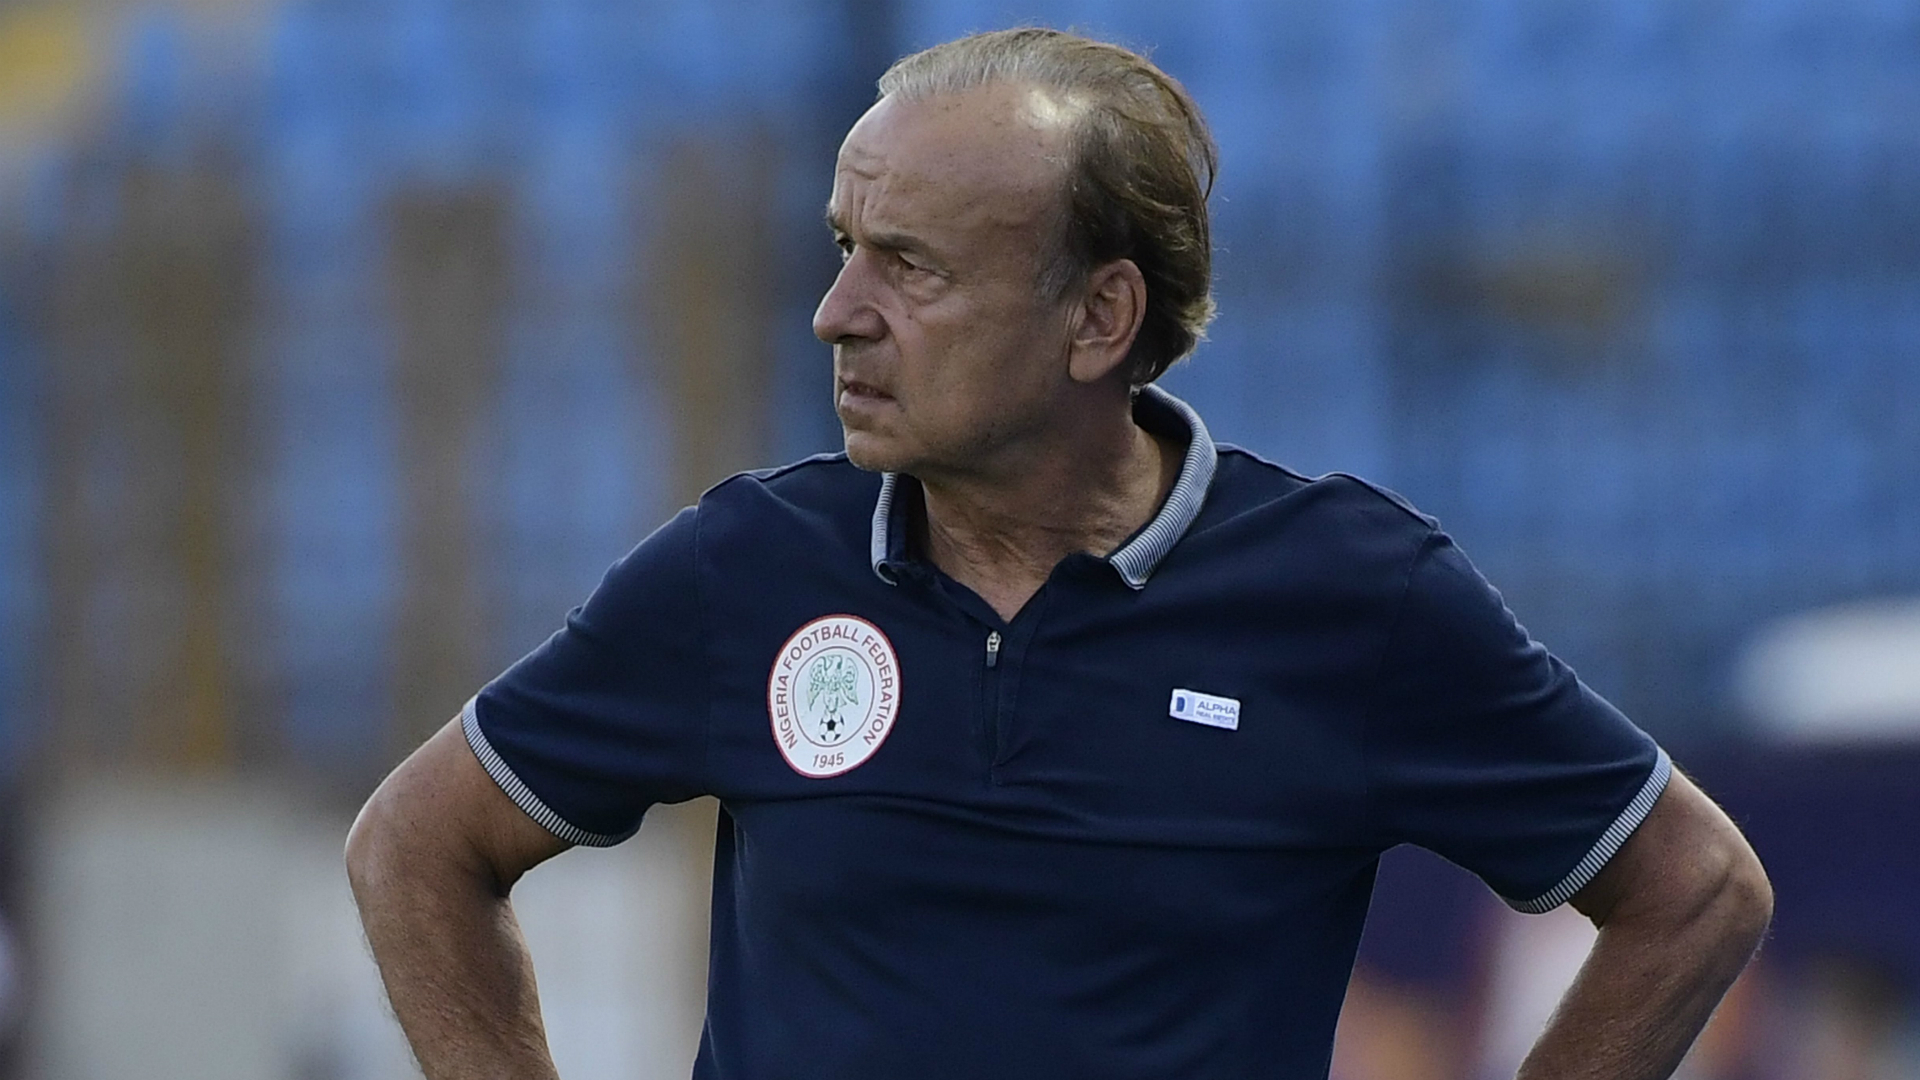 Gernot Rohr lacks talent to coach Nigeria – Akpoborie